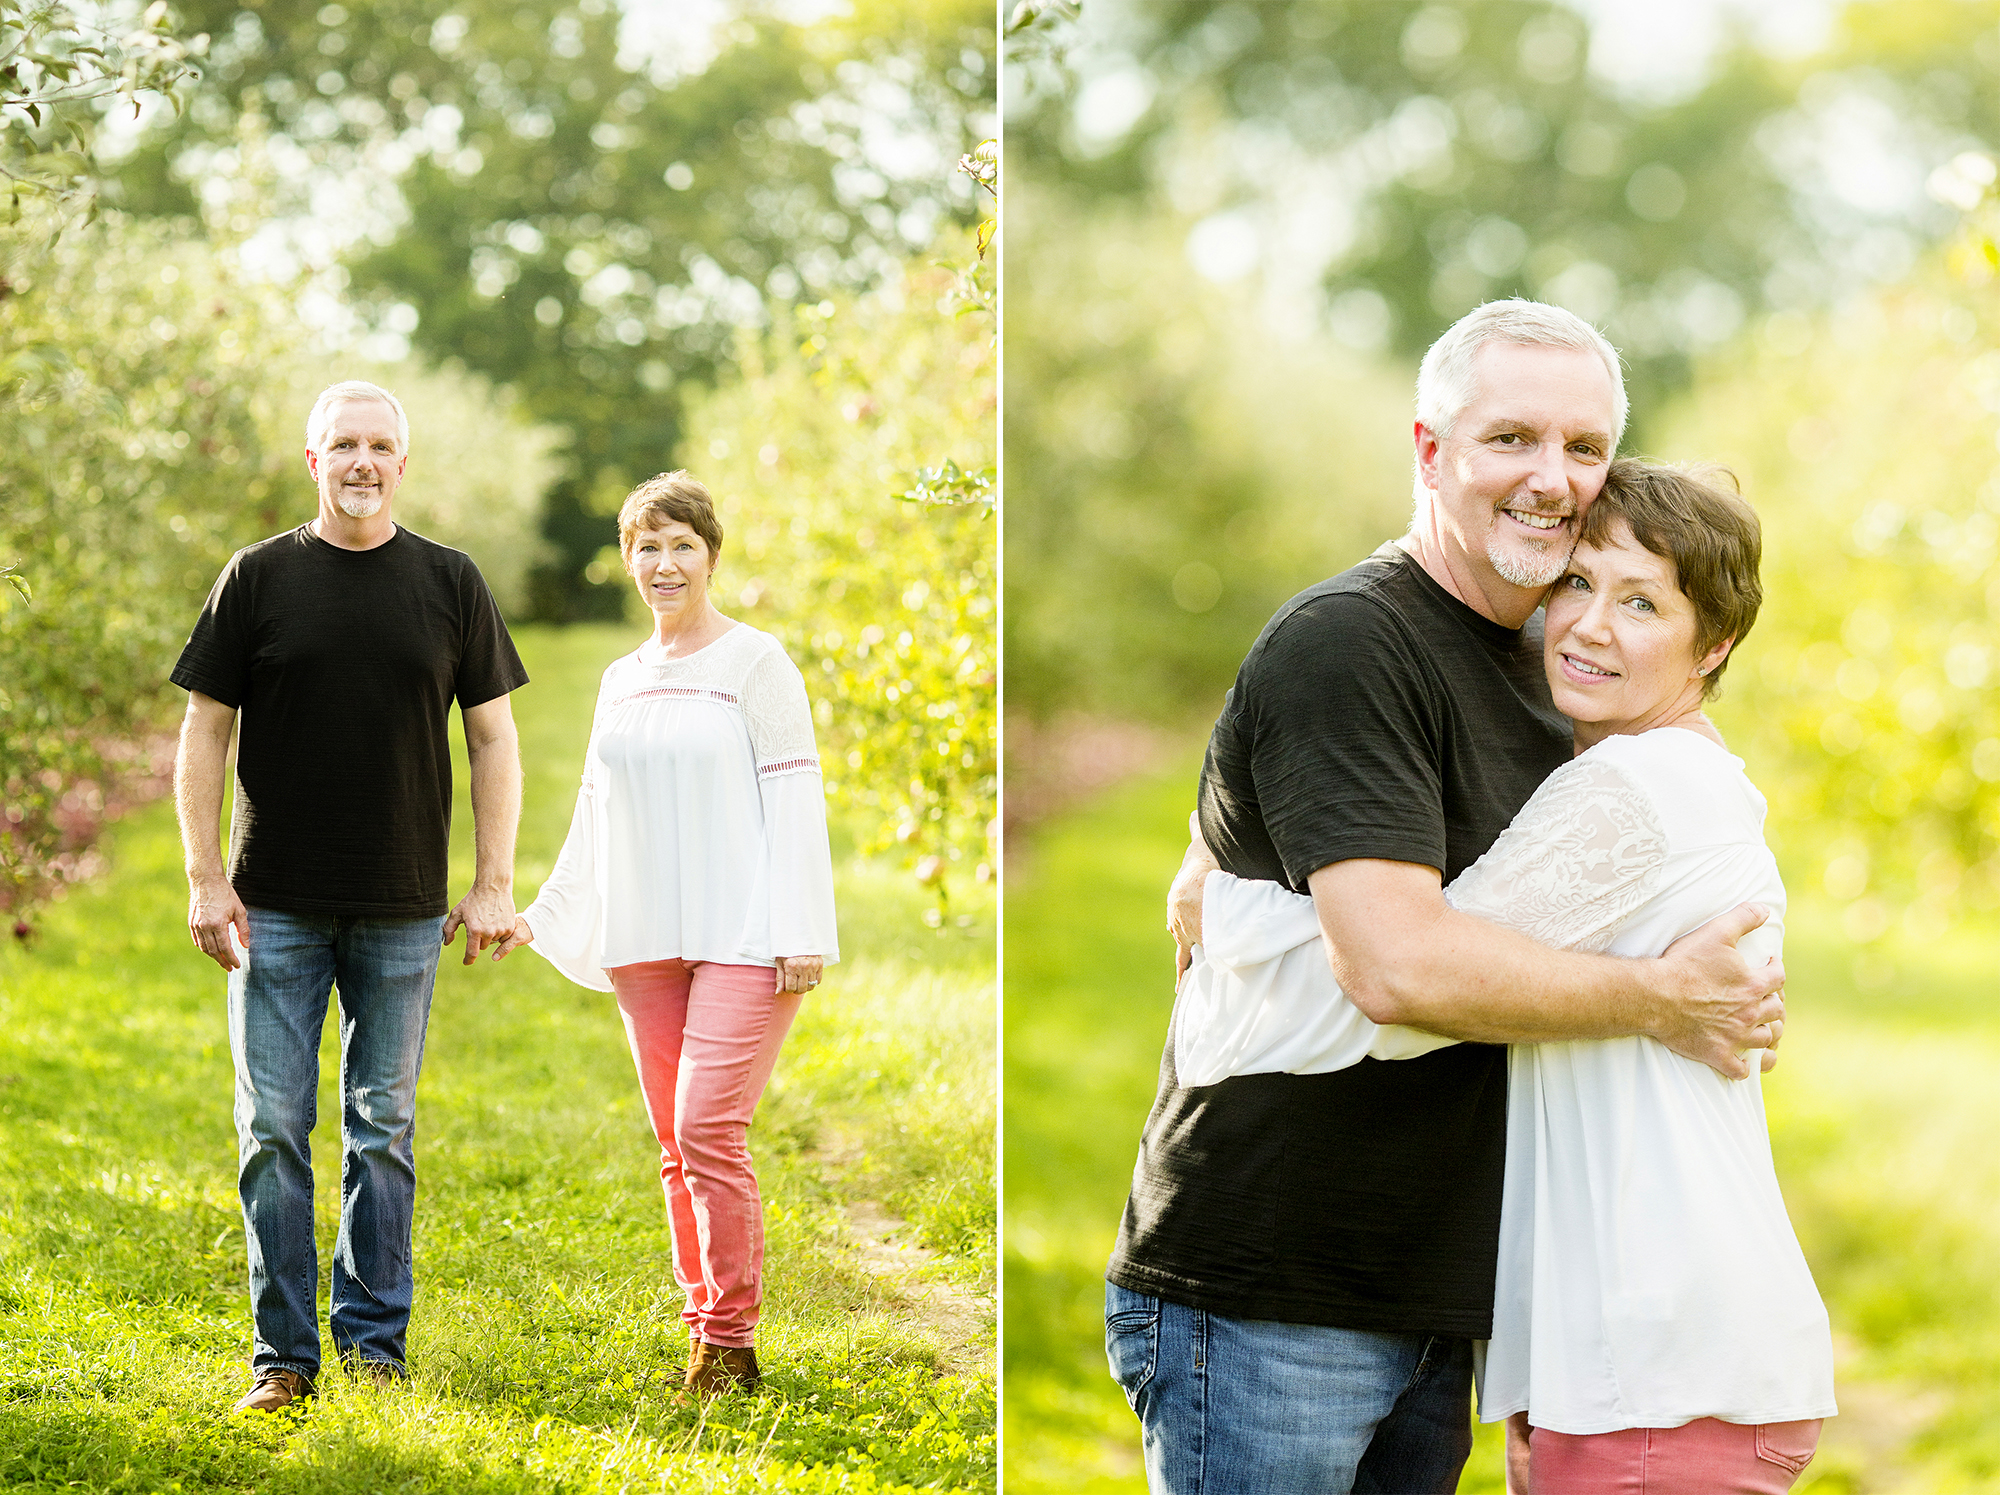 Seriously_Sabrina_Photography_Lexington_Kentucky_Eckert_Boyd_Orchard_Portraits_Good_Family_21.jpg